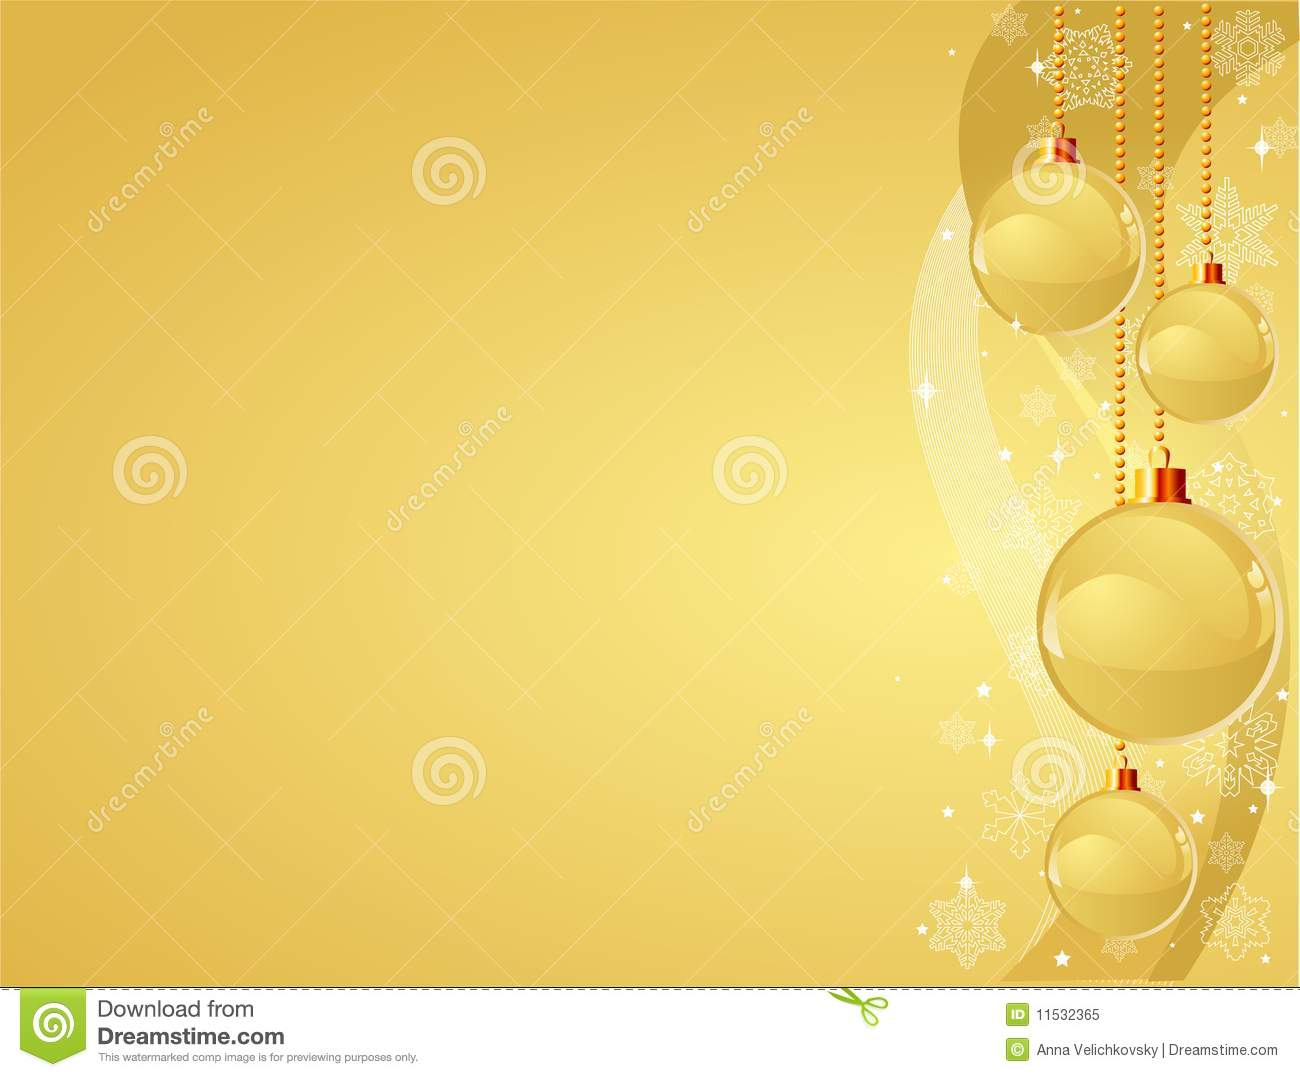 christmas gold background golden - photo #35